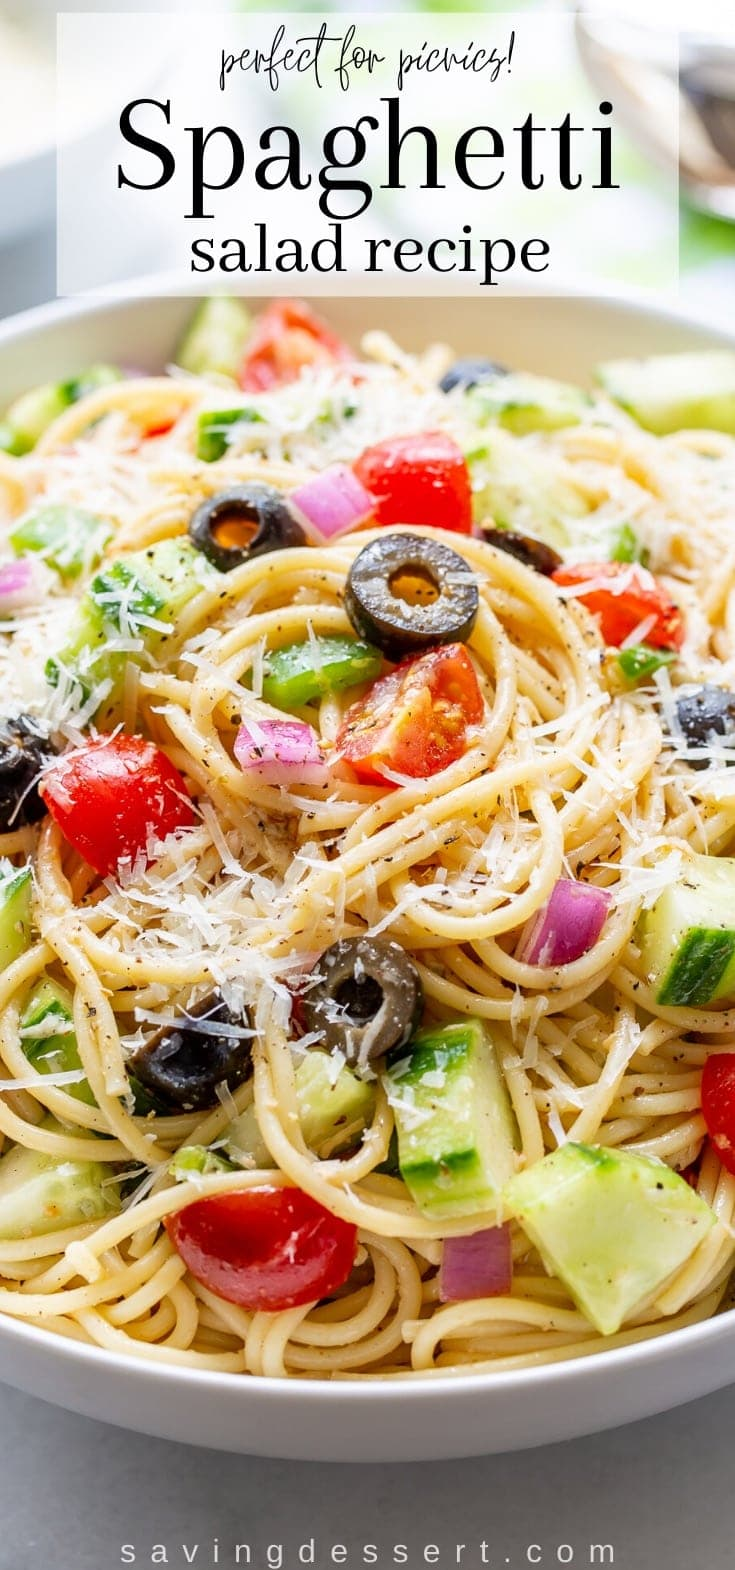 A bowl of spaghetti with red onion, olives, cucumbers and tomatoes tossed in an Italian dressing